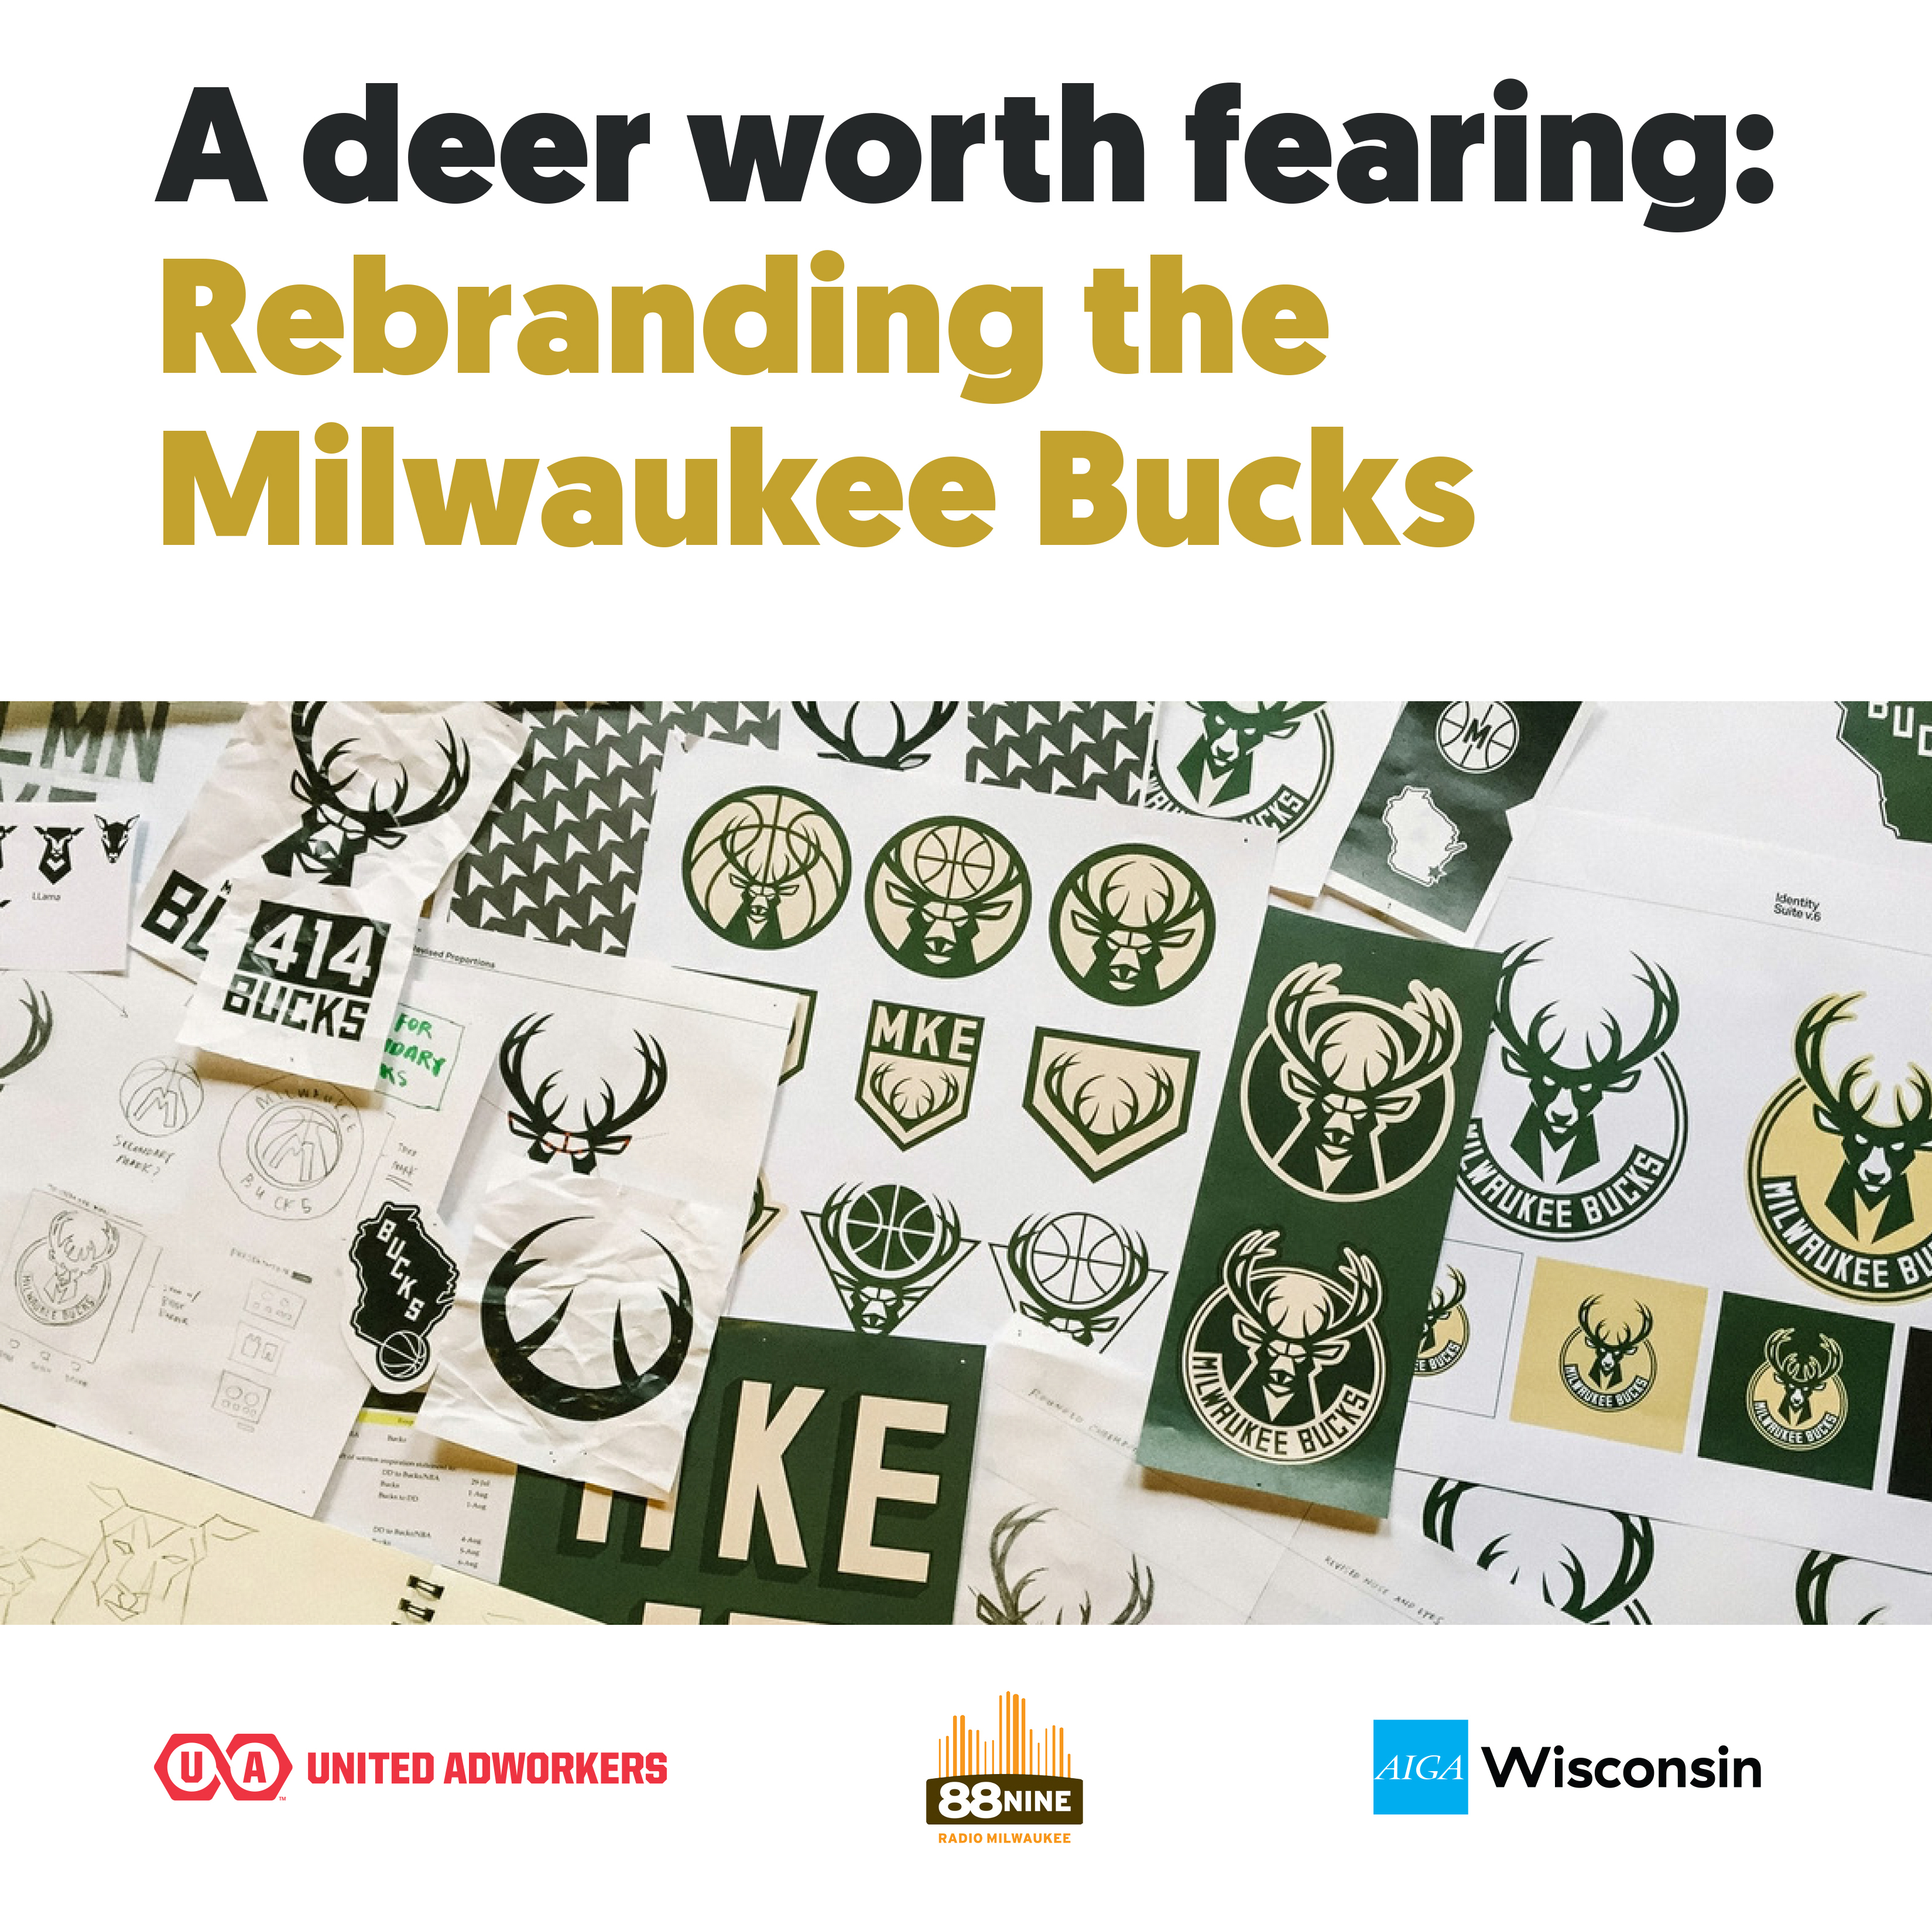 A Deer Worth Fearing: Rebranding the Milwaukee Bucks